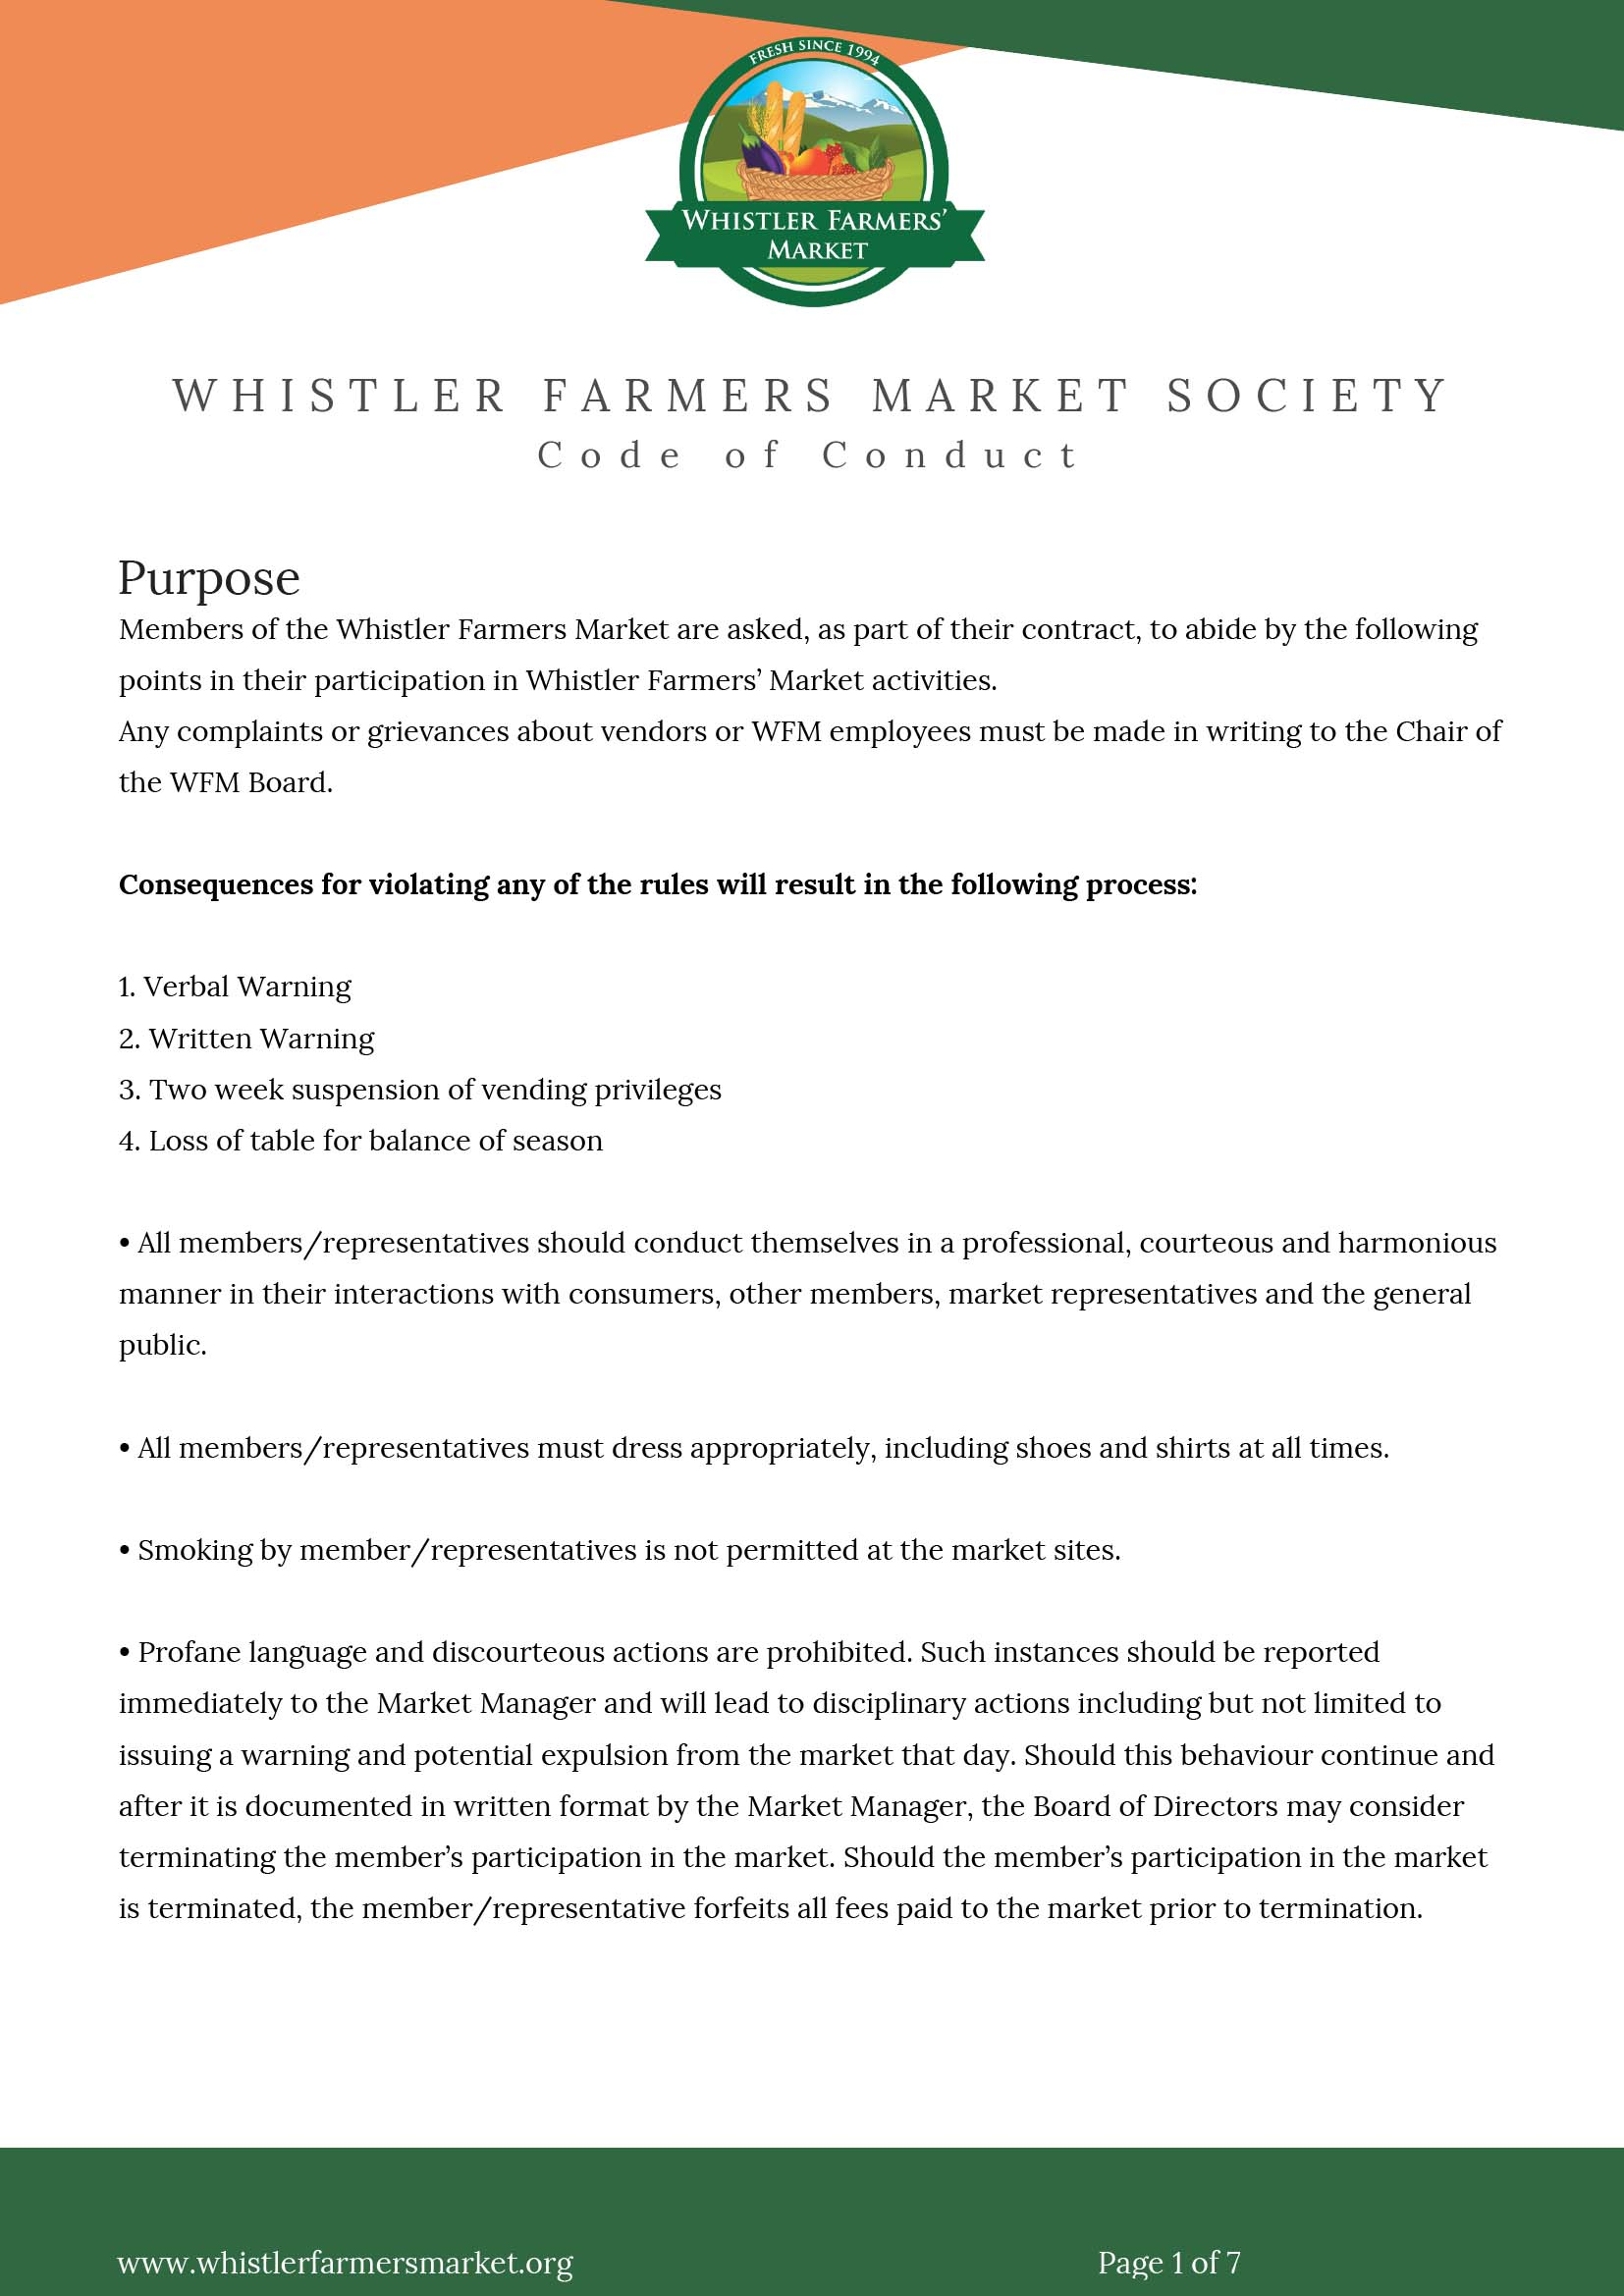 Whistler+Farmers+Market+Society+Code+of+Conduct+(1)-1.jpg